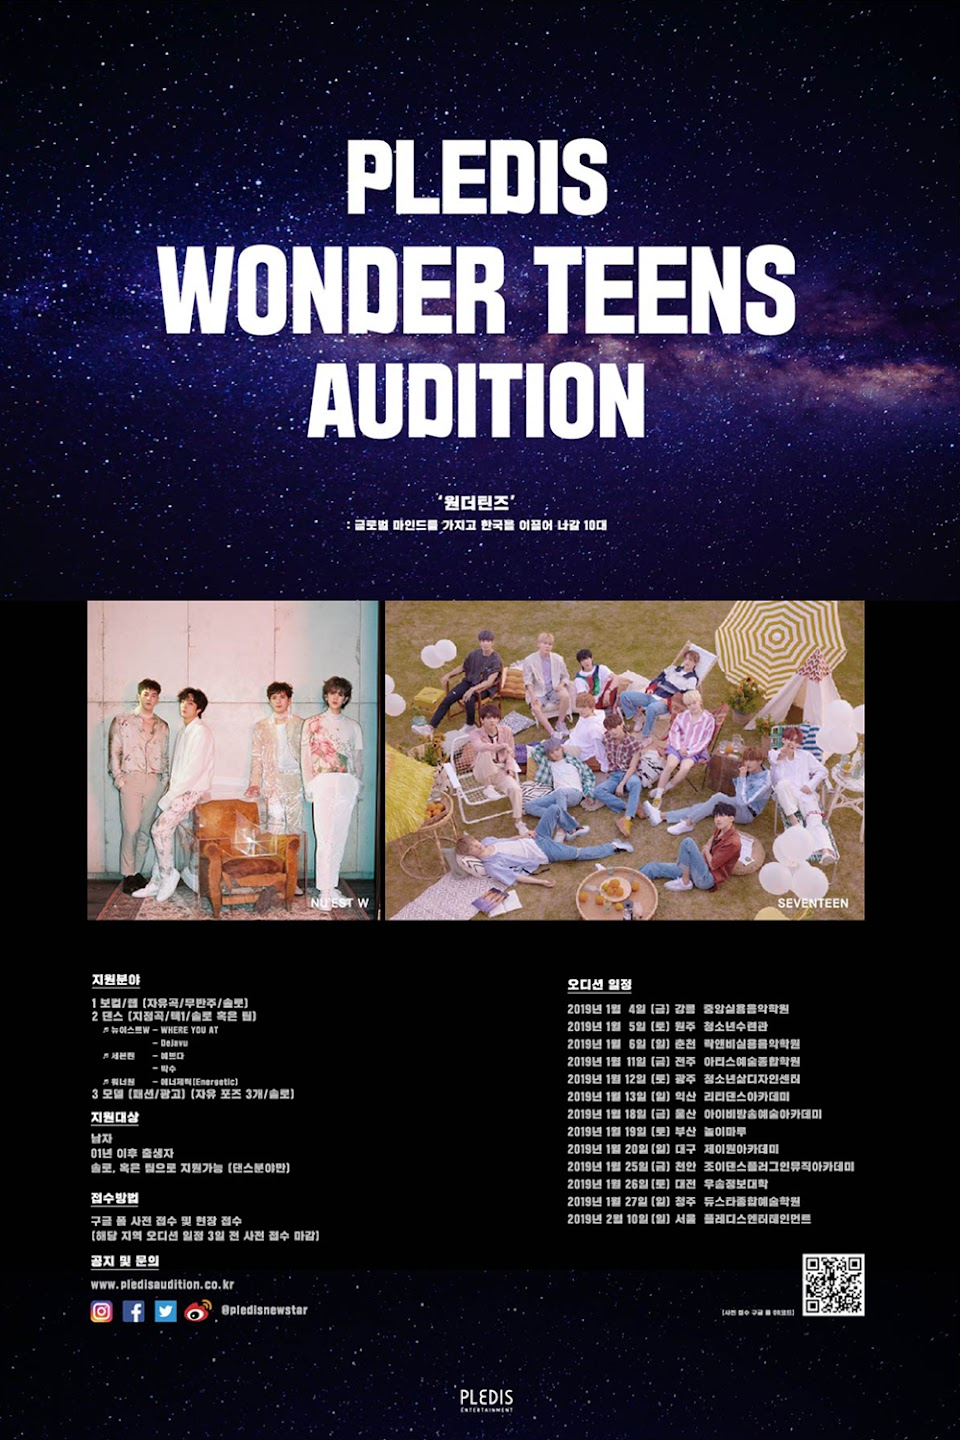 pledis-wonder-teen-audition